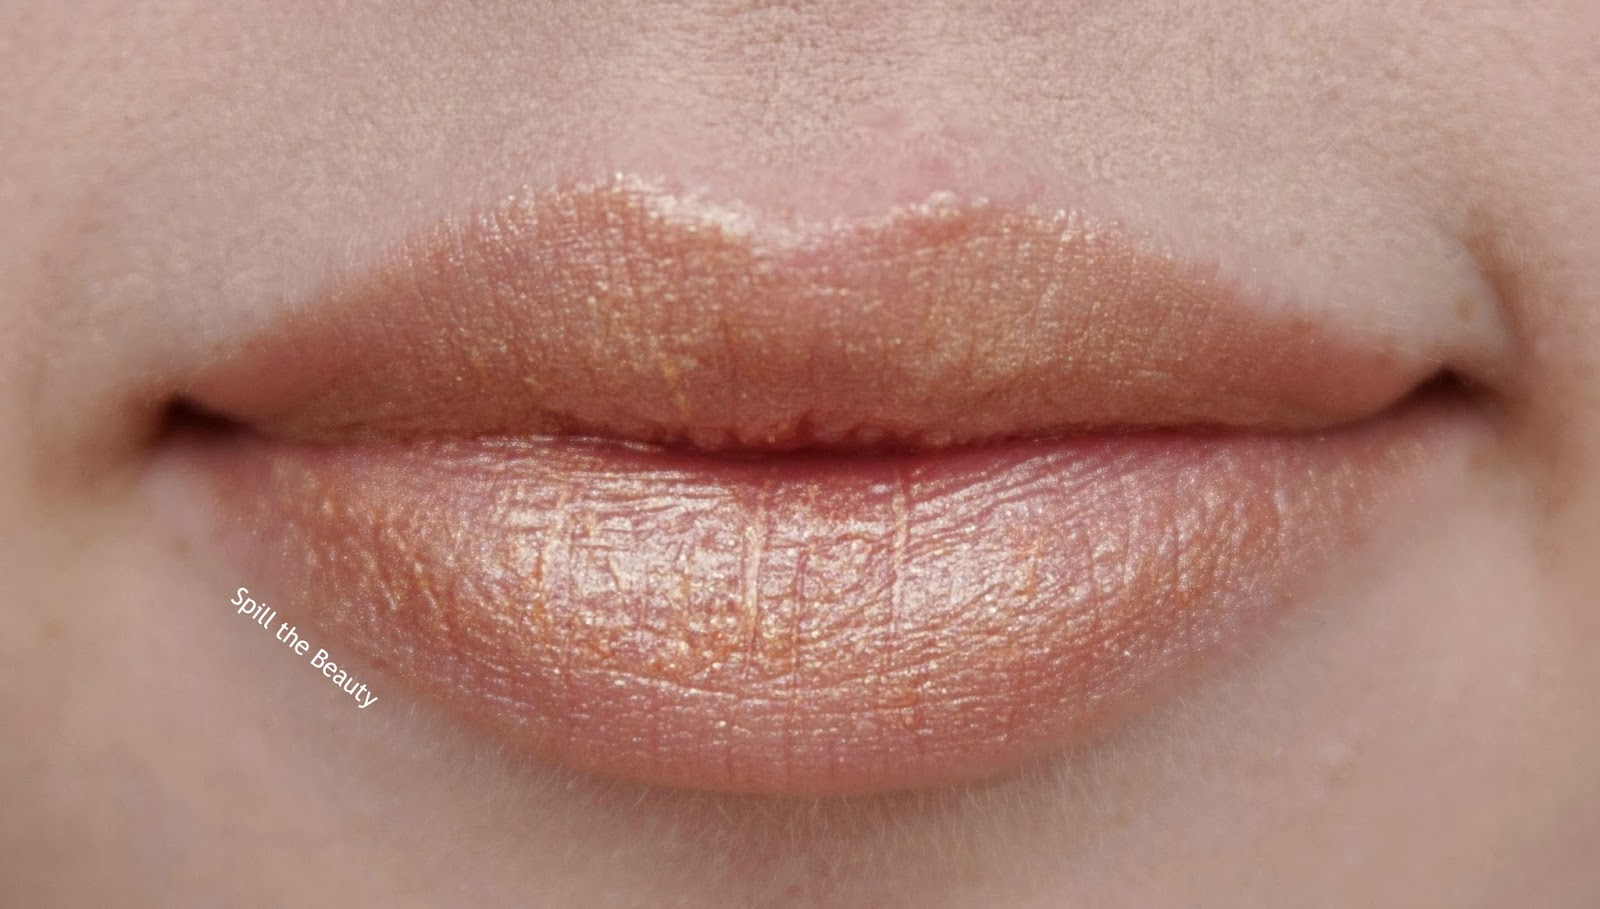 dior holiday makeup 2016 3.2 lipstick swatch golden